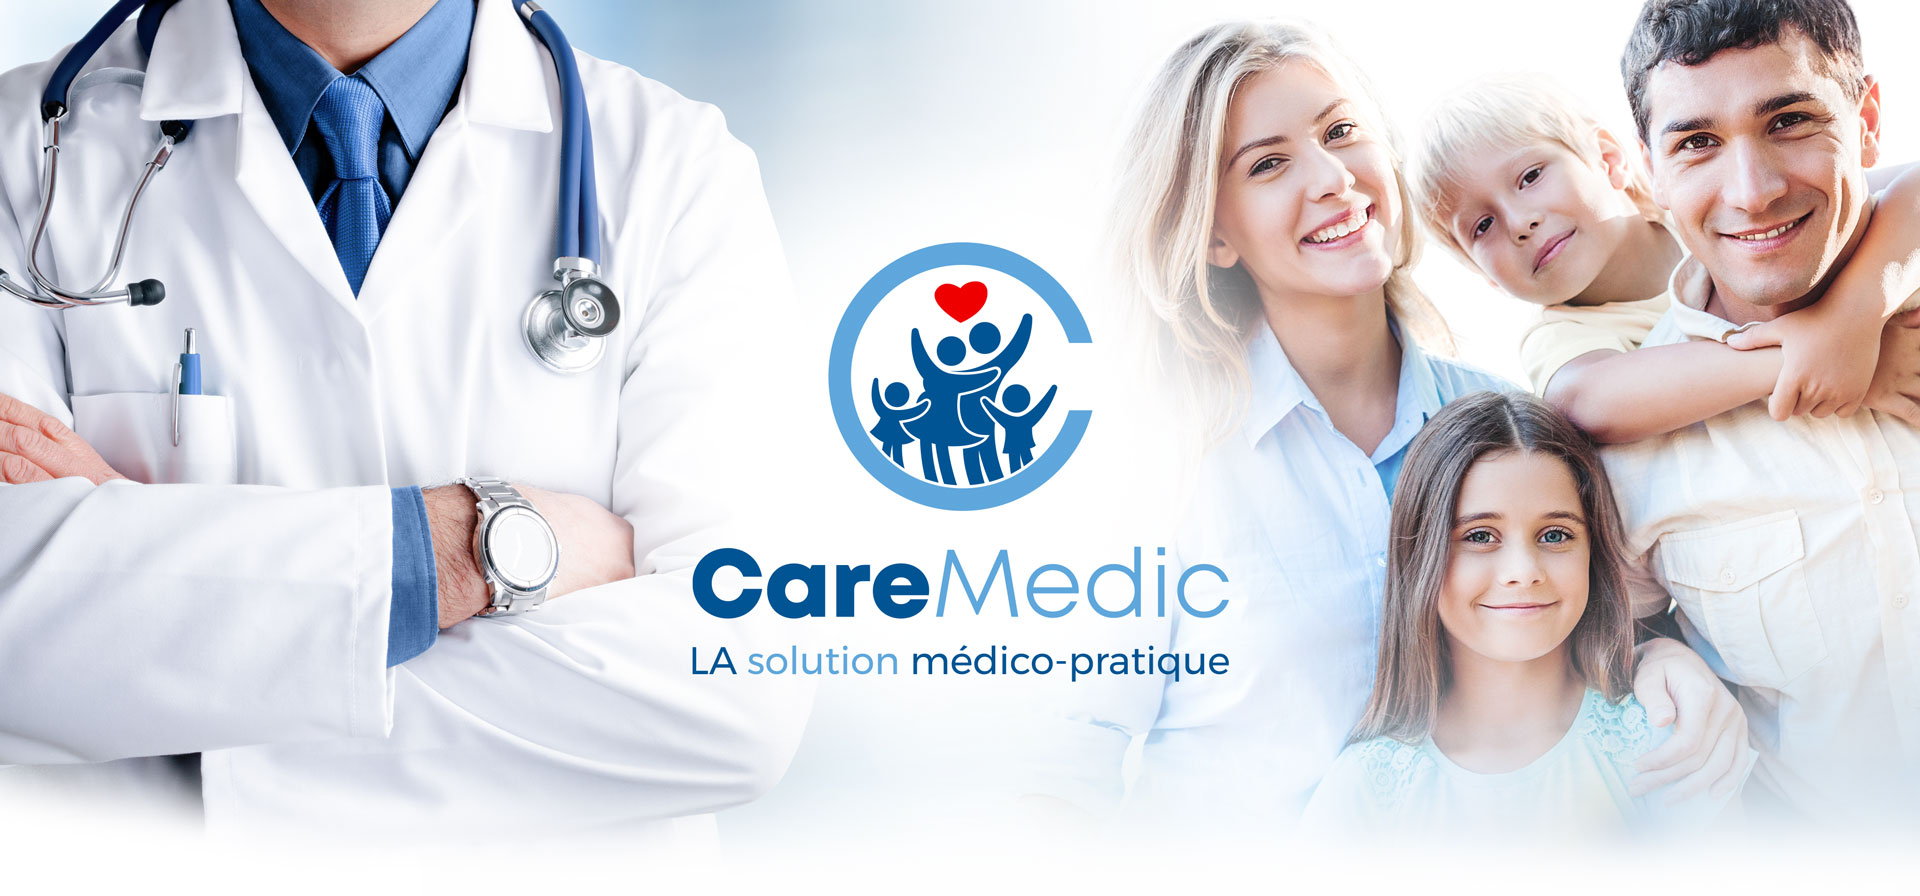 CareMedic - Application -Ma sant